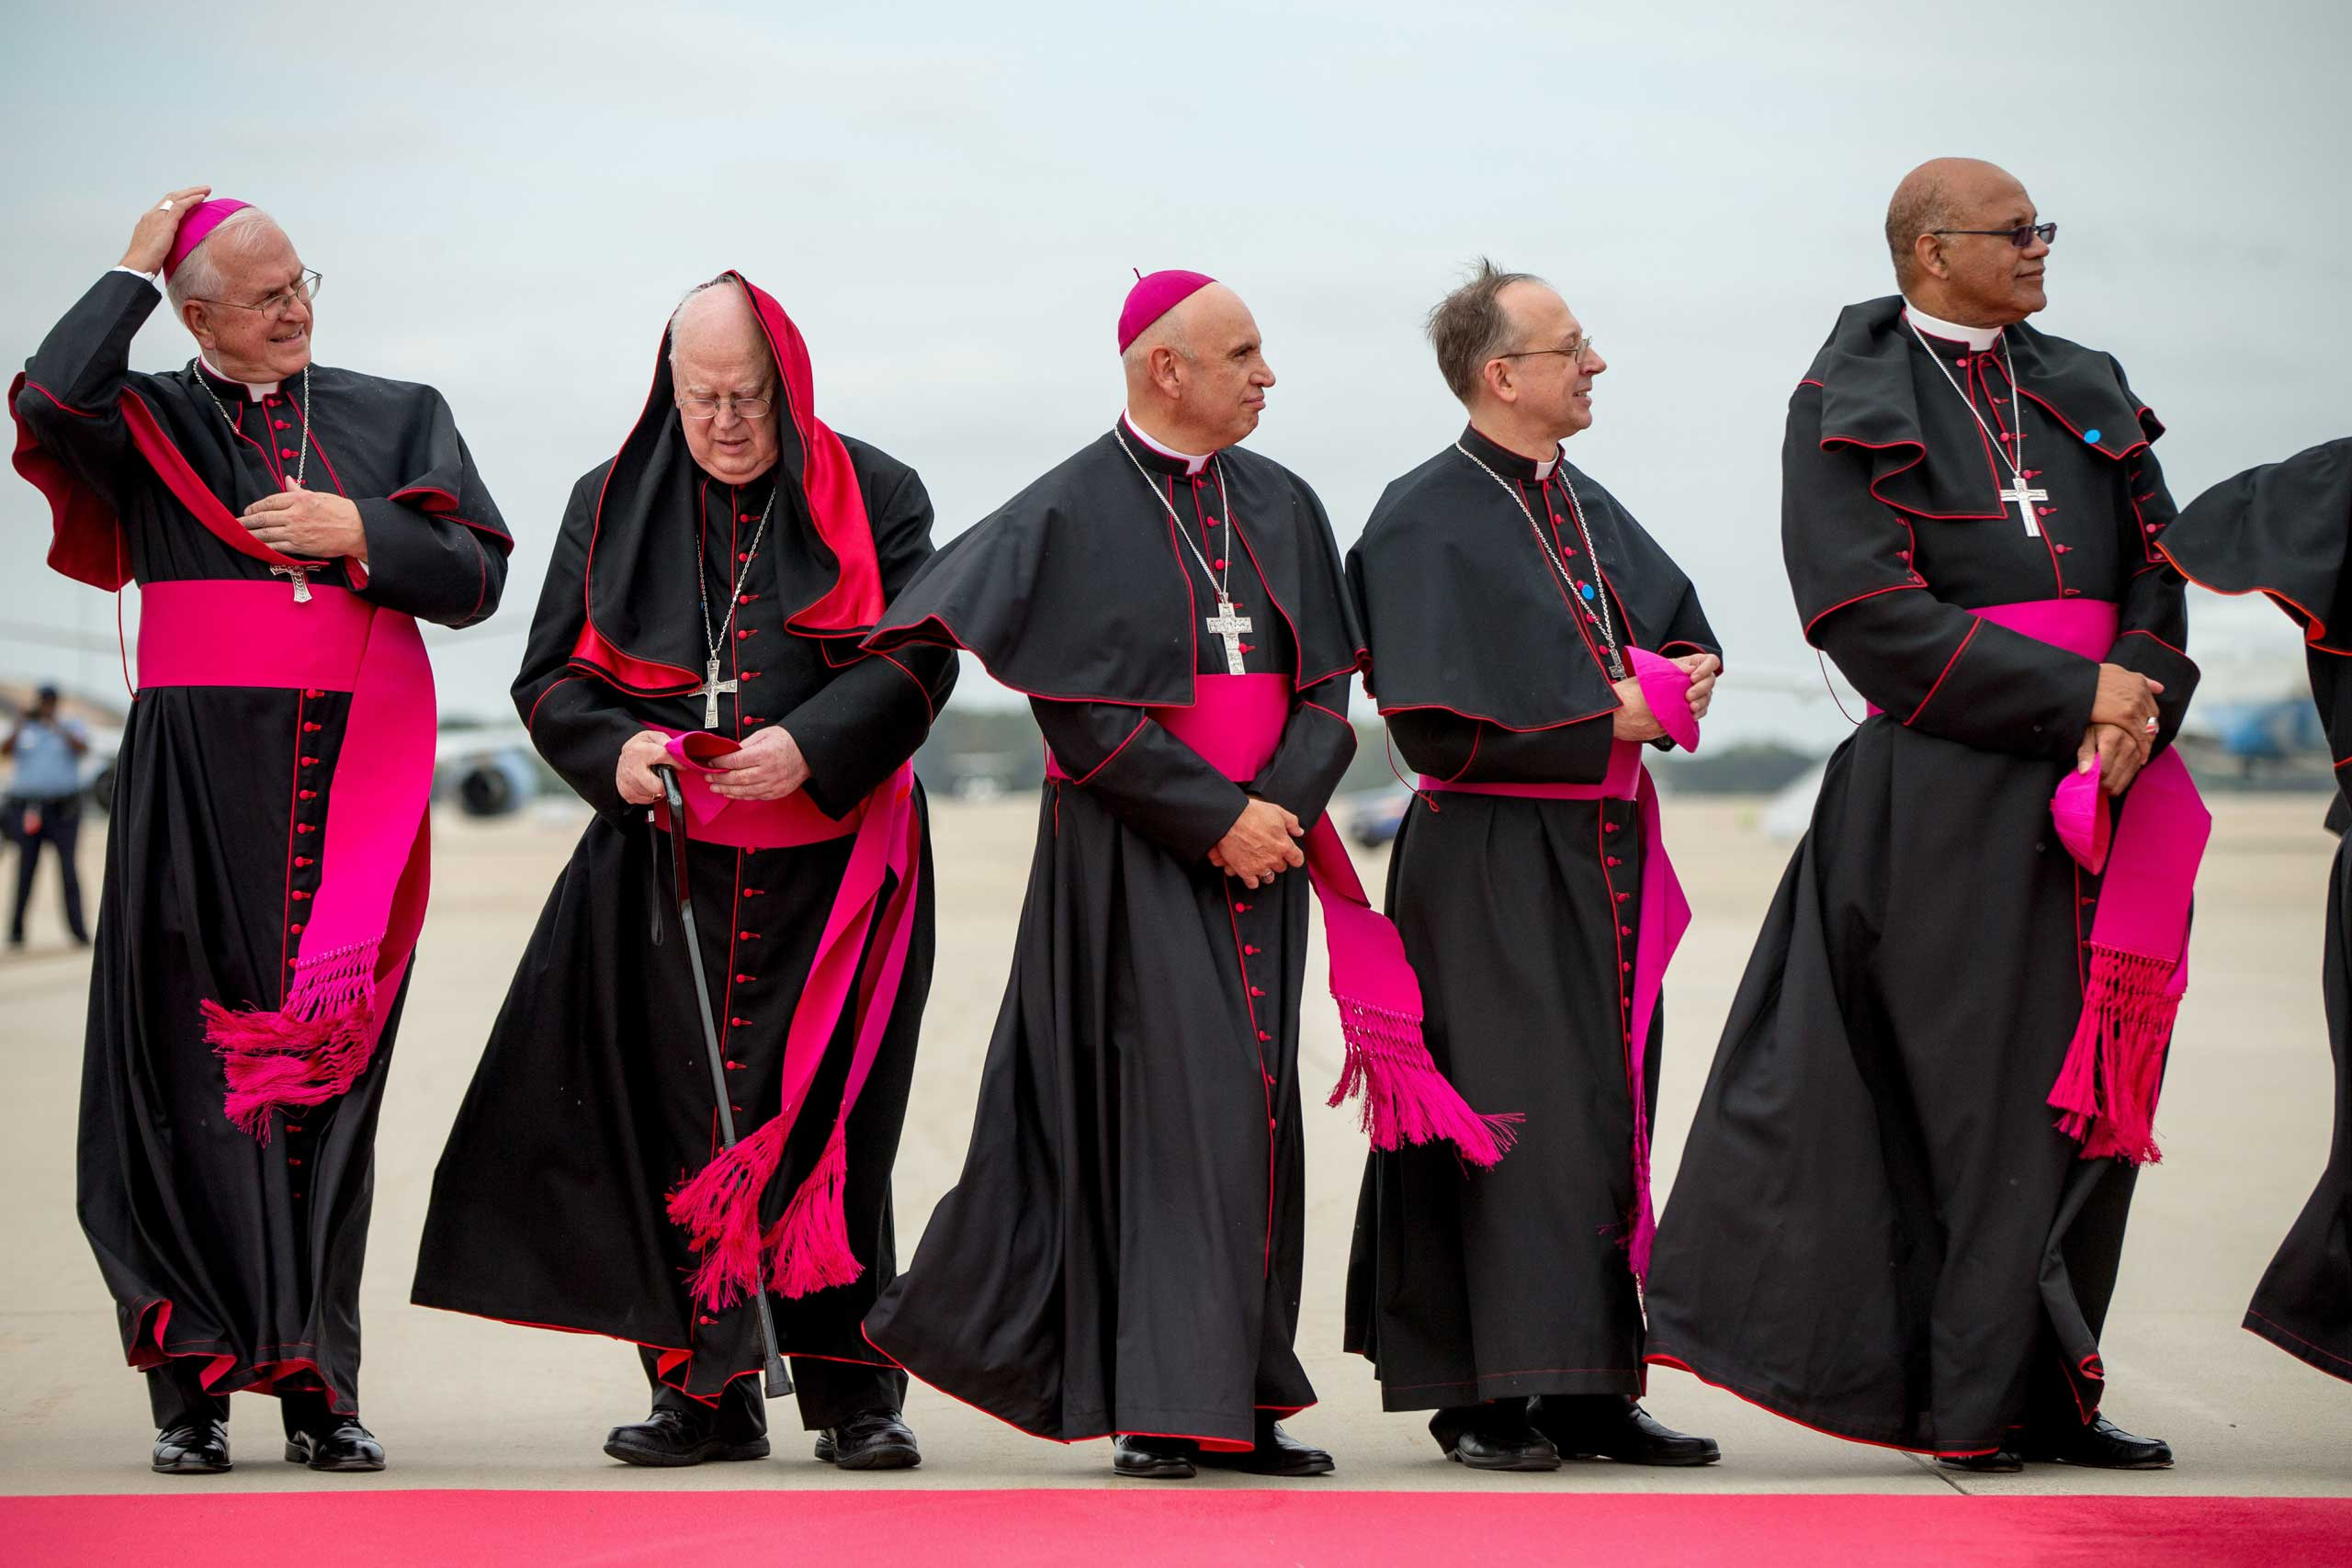 Clergy brace for the wind as they stand along the red carpet on the tarmac at Andrews Air Force Base, Md., on Sept. 22, 2015, as the plane carrying Pope Francis arrives.